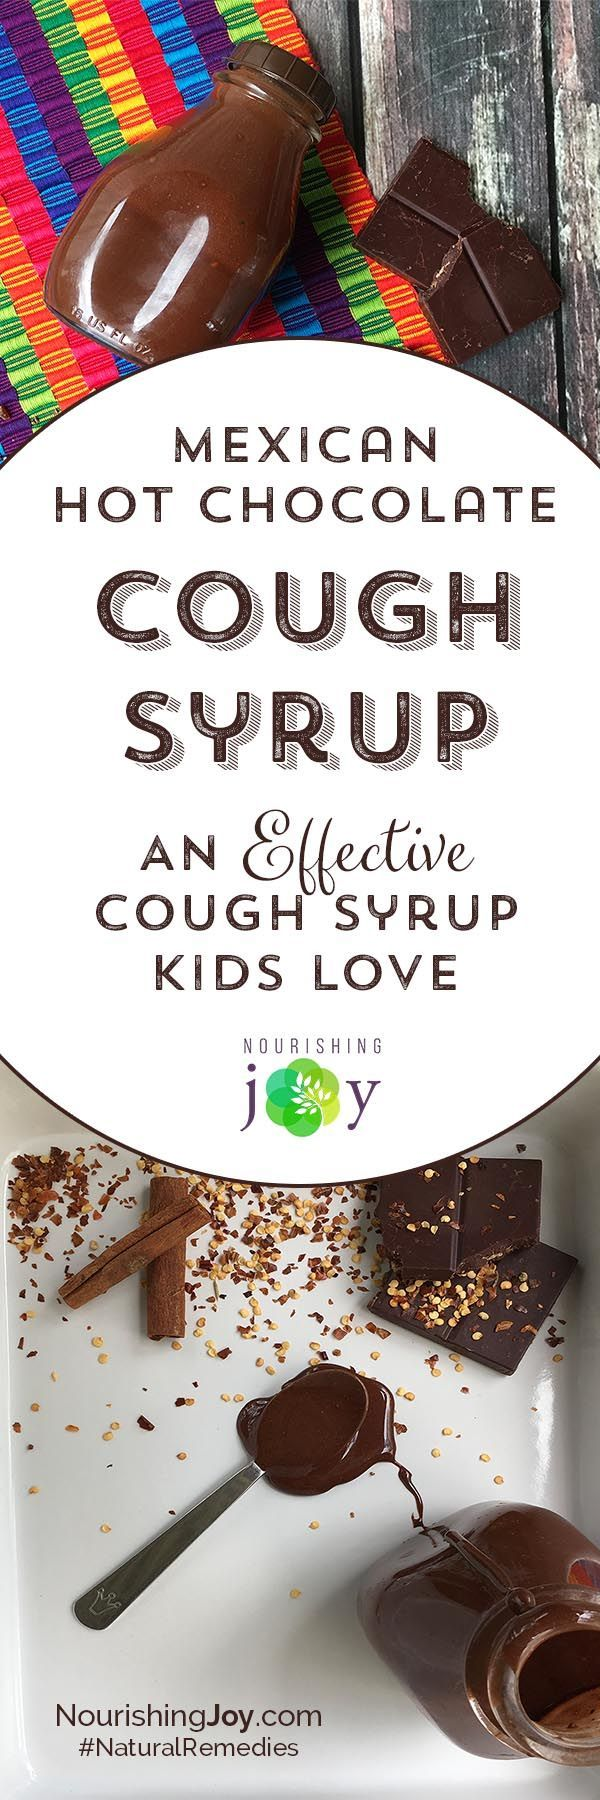 Did you know that recent studies have shown that theobromine, the main chemical constituent in chocolate, has been proven to be more effective for cough relief than codeine? And not only that, but this cough syrup is SERIOUSLY TASTY - kids and adults alike will absolutely love the flavor AND find relief.